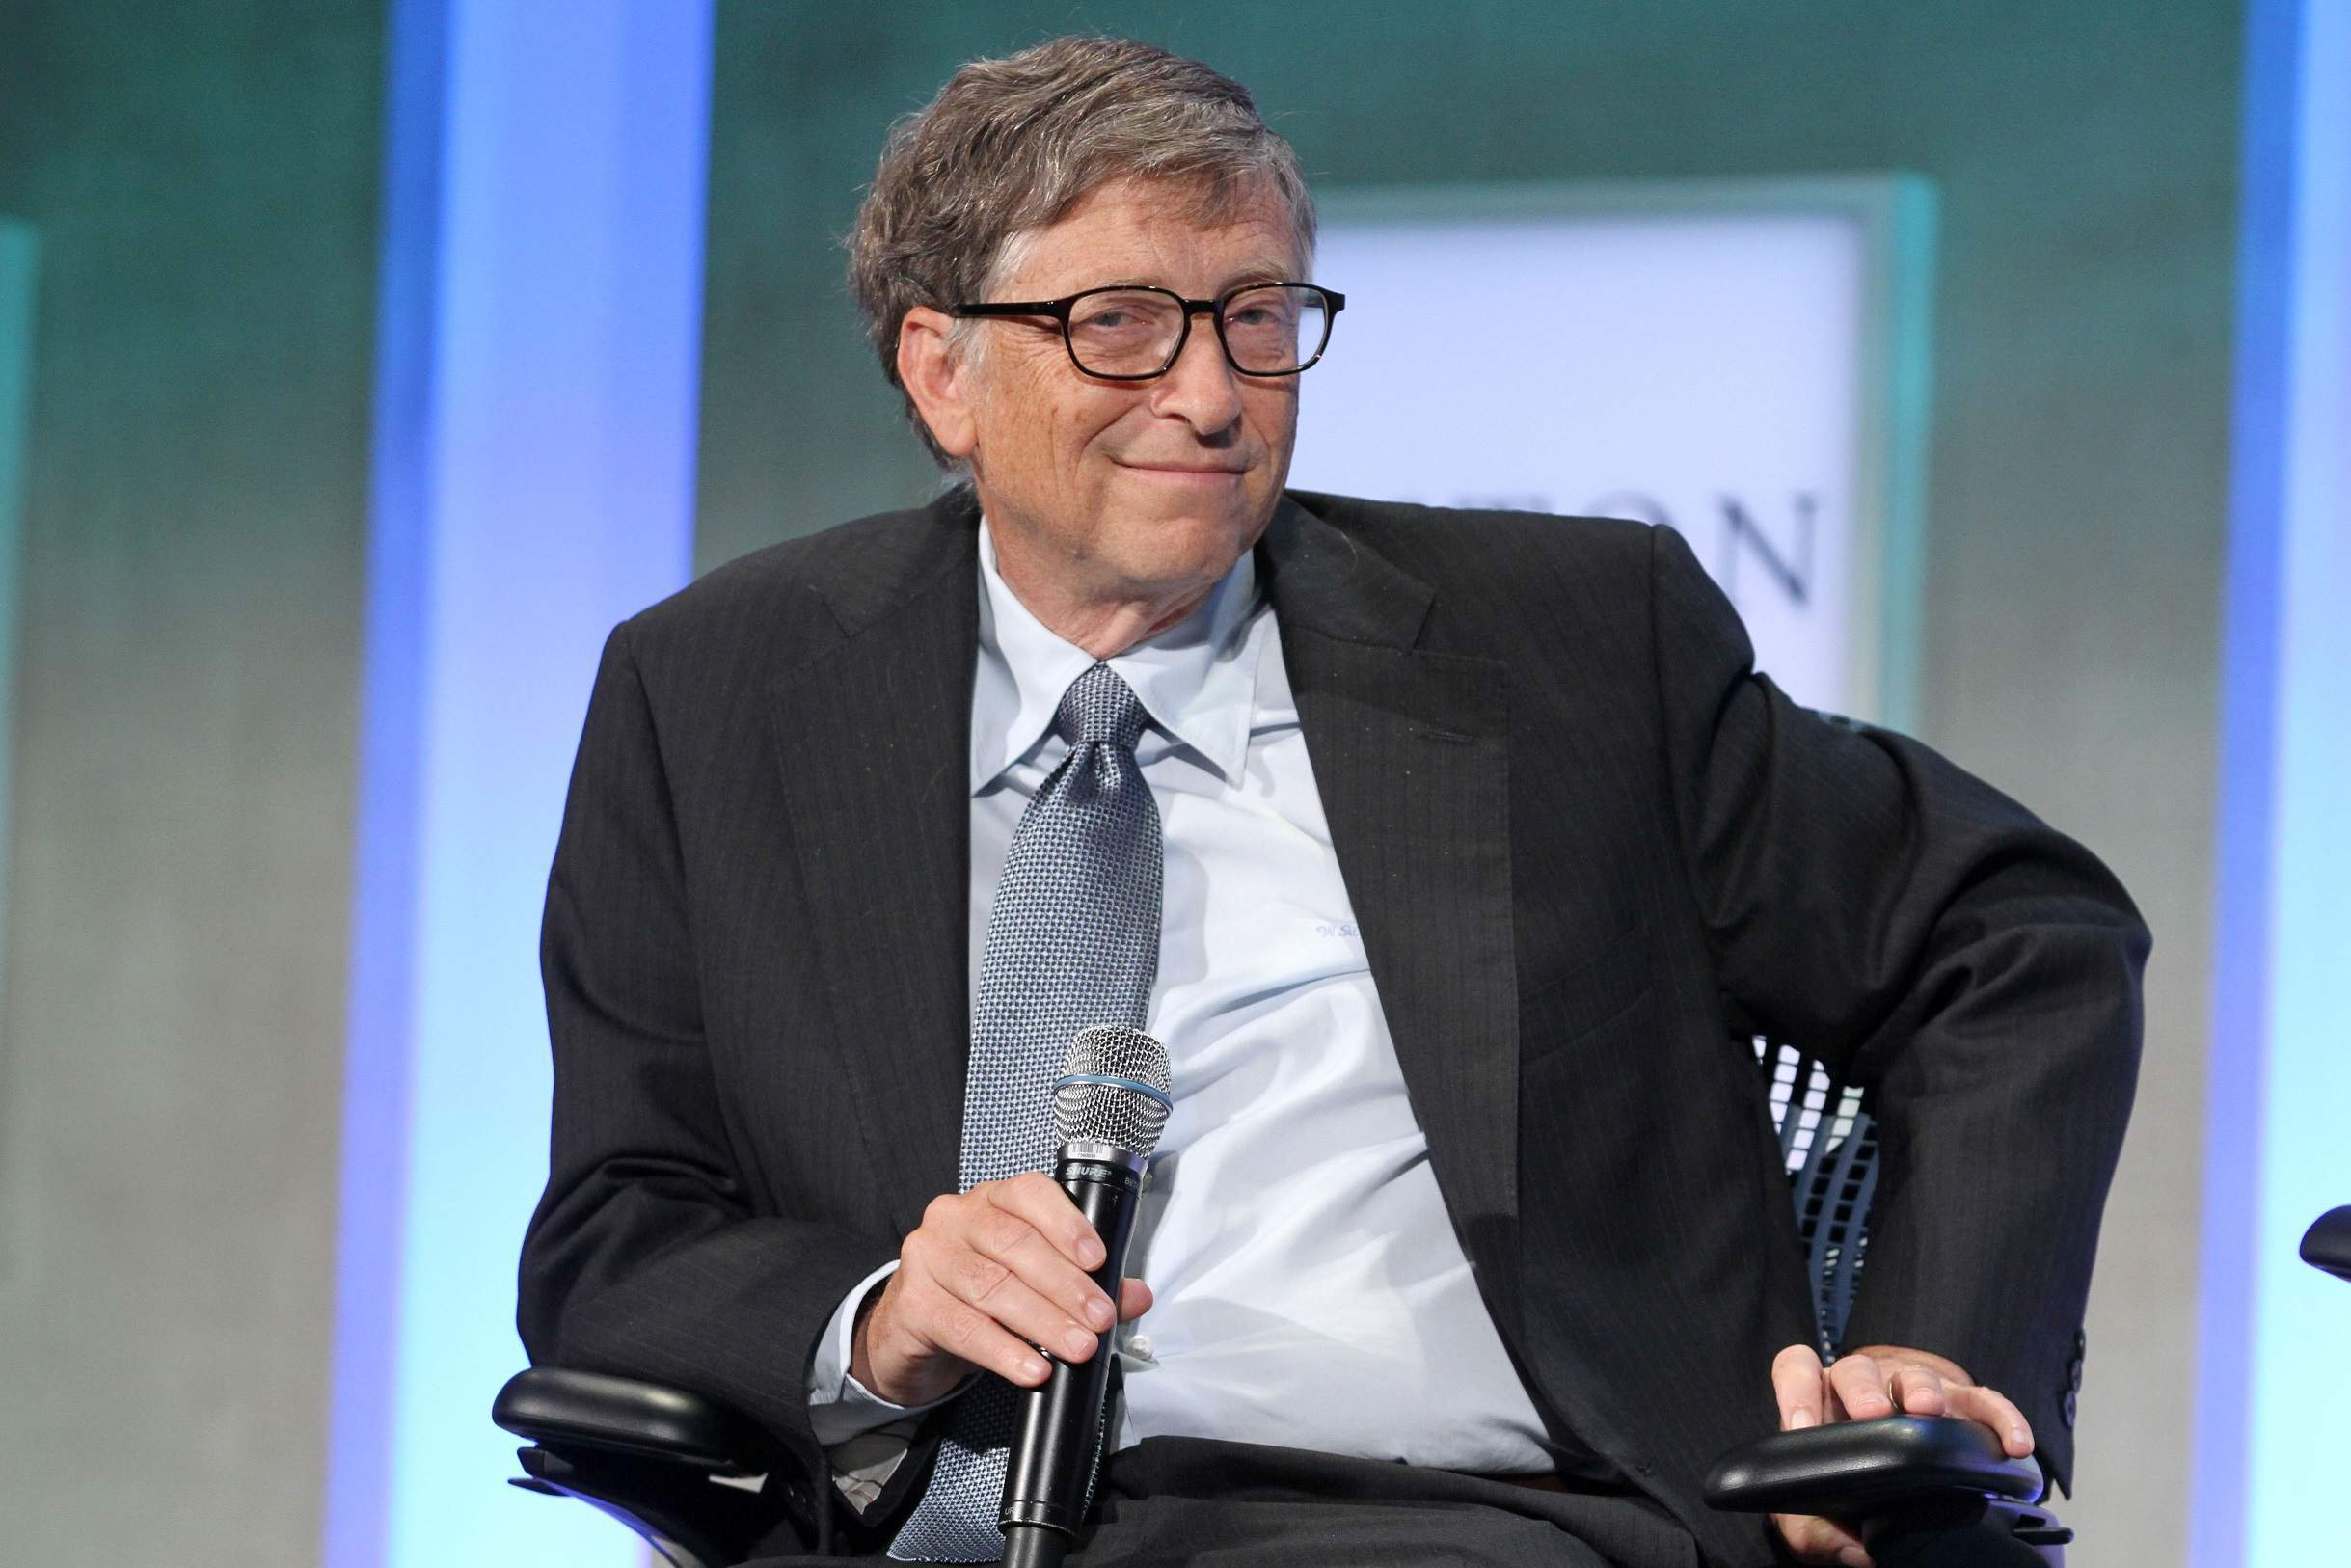 Bill Gates' solution to job automation? Make the robots pay tax